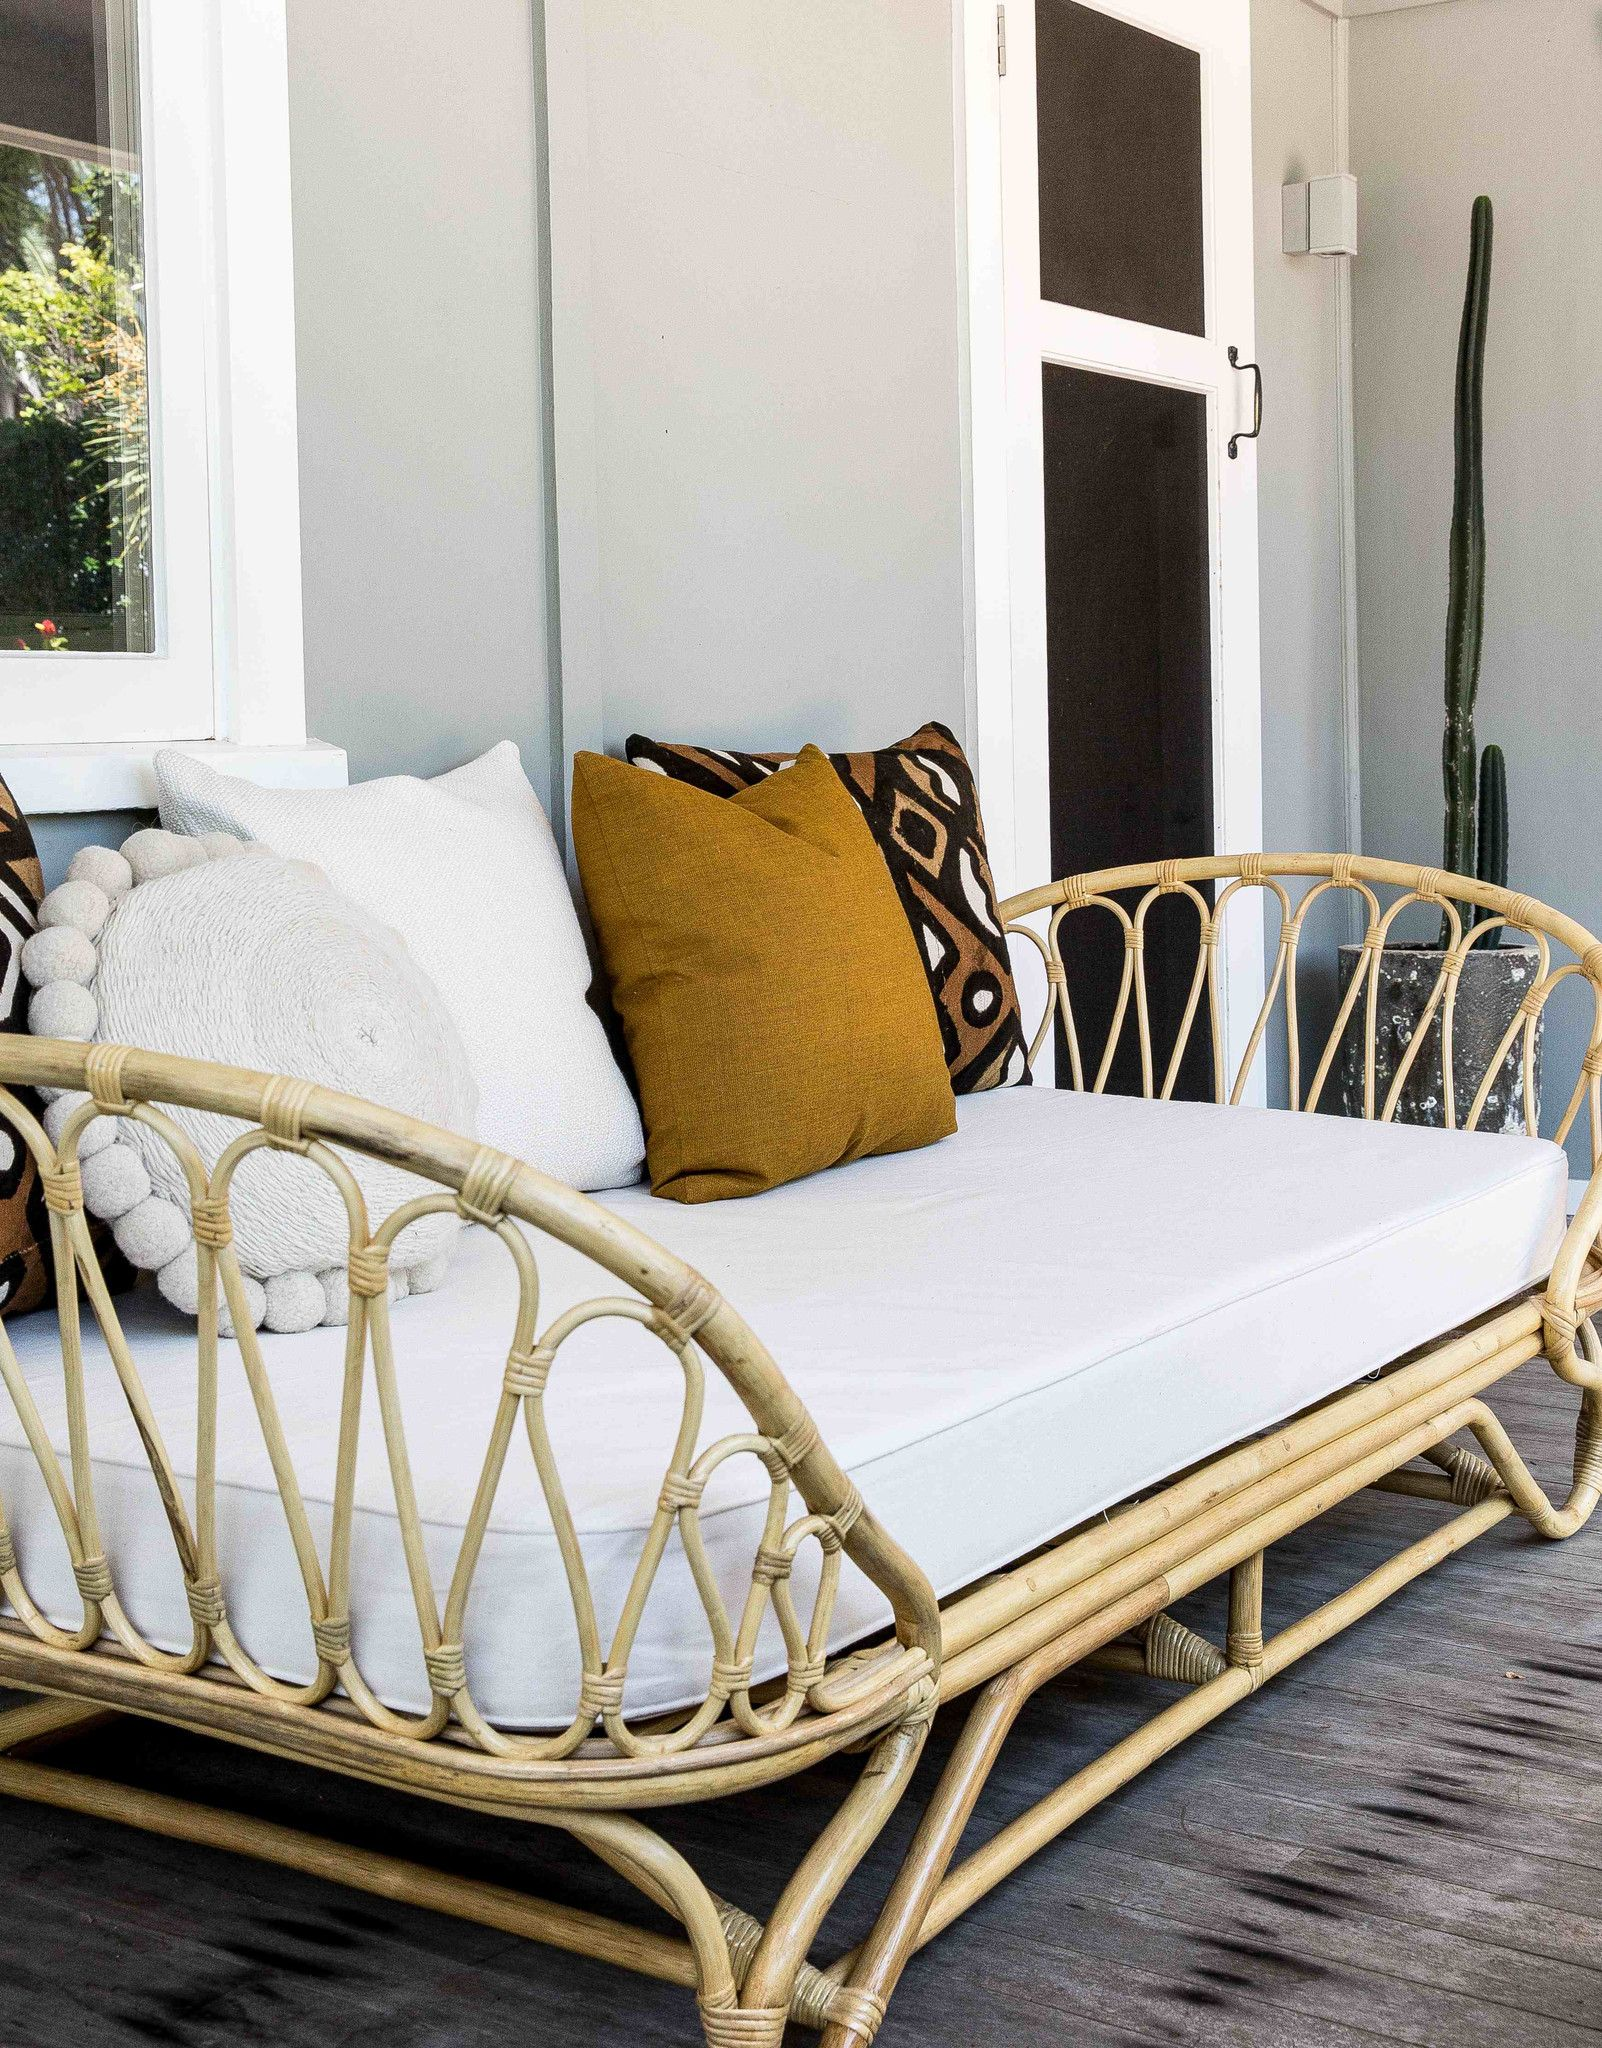 How to Buy a Daybed | Living Spaces